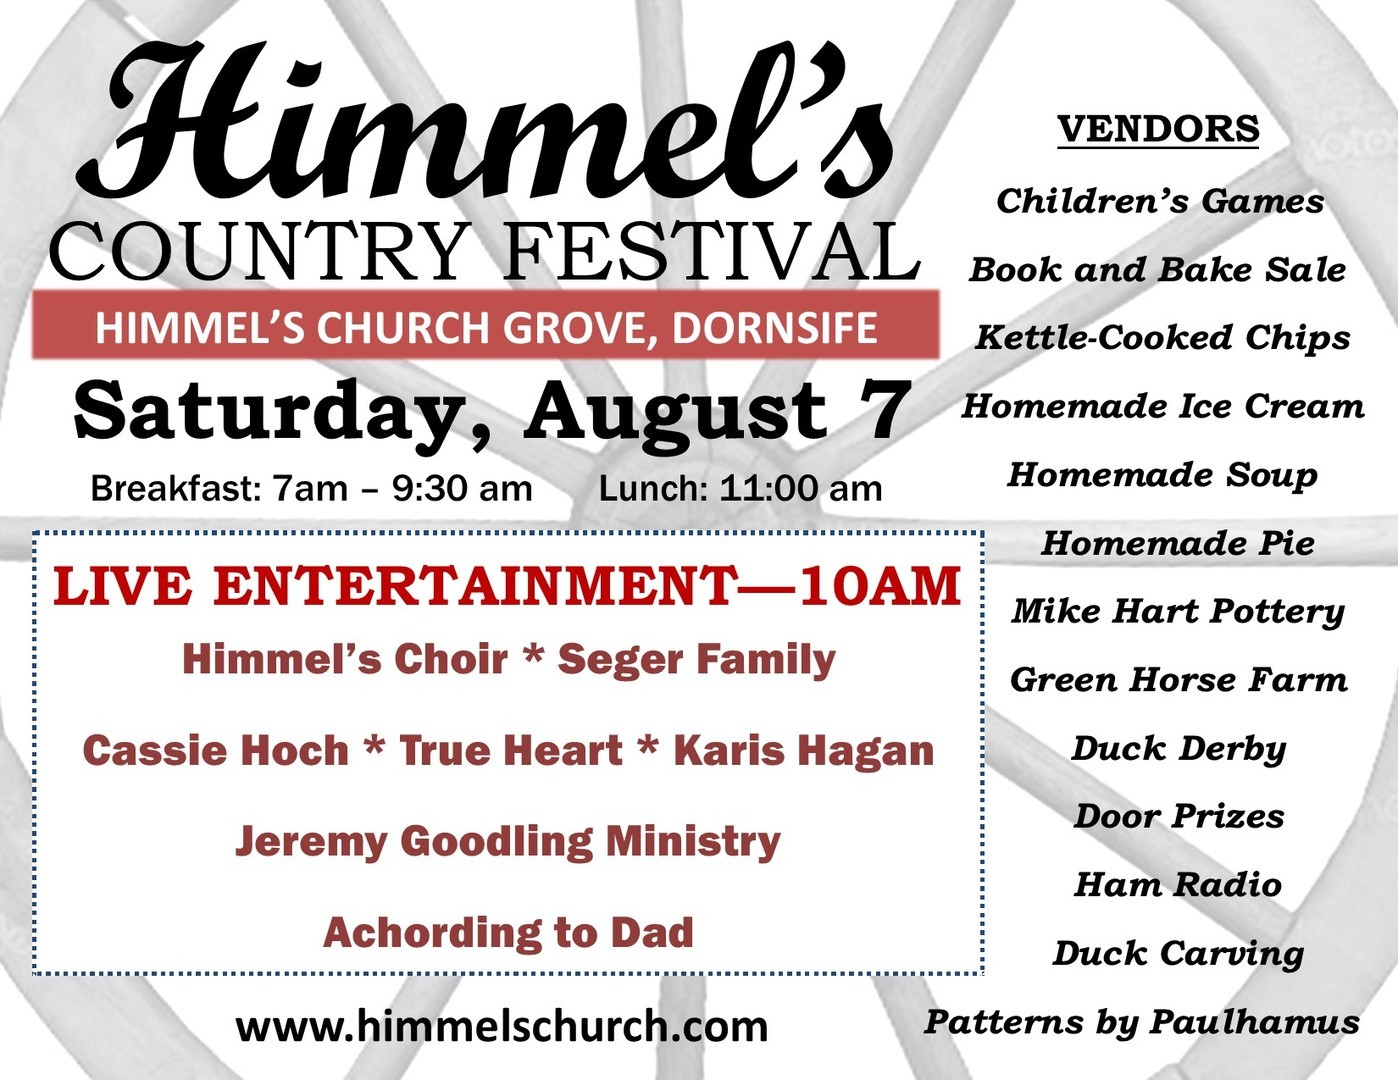 Himmel's Church Annual Country Festival